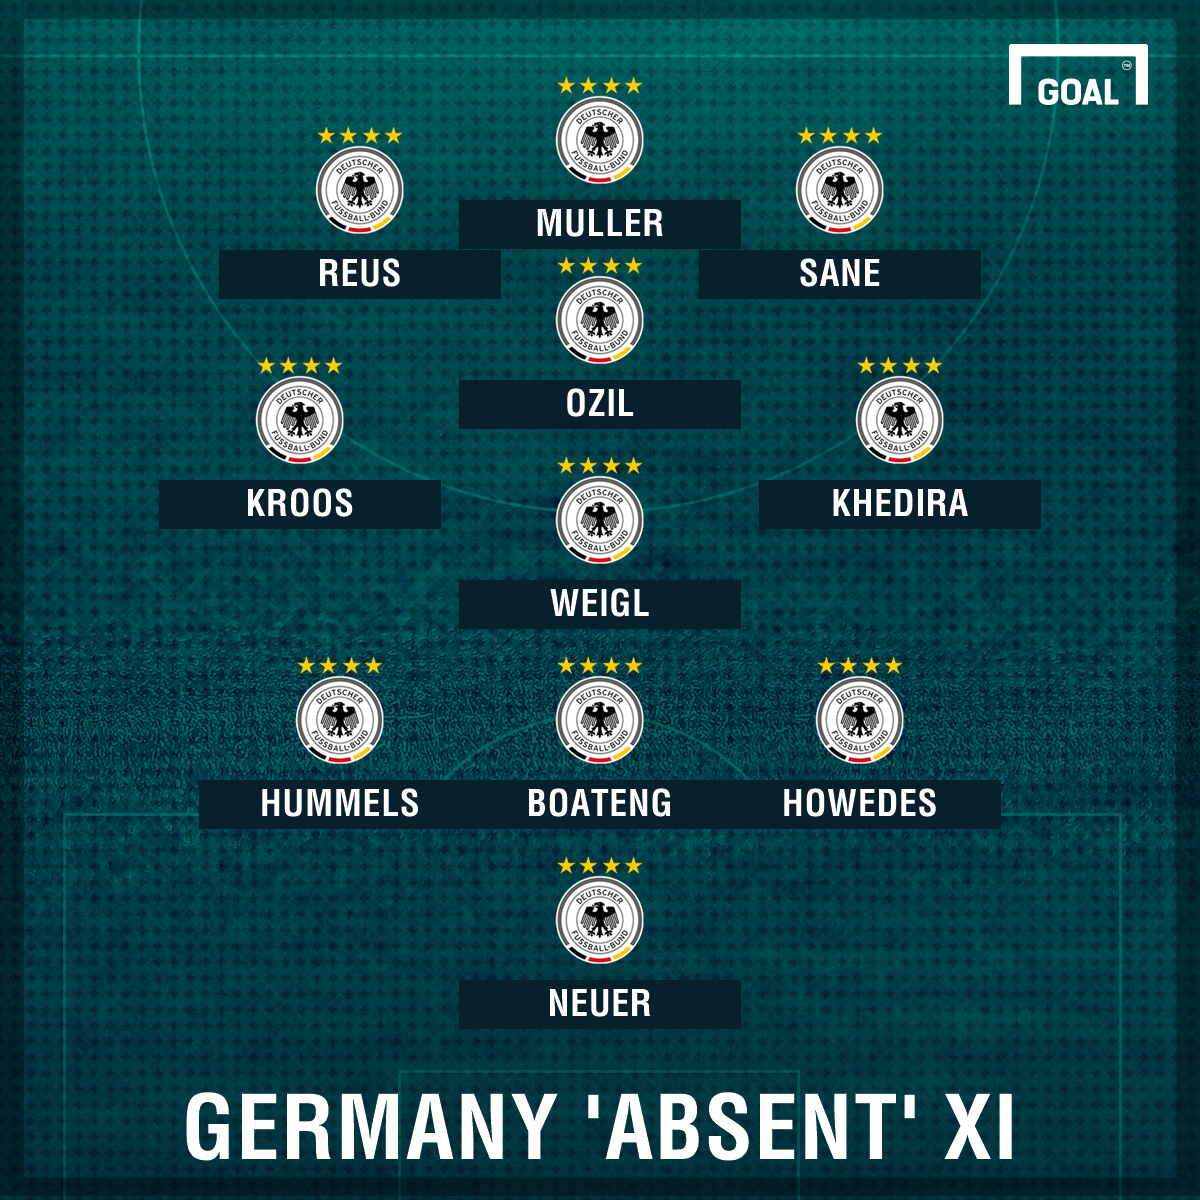 gfx Germany absent XI 020717